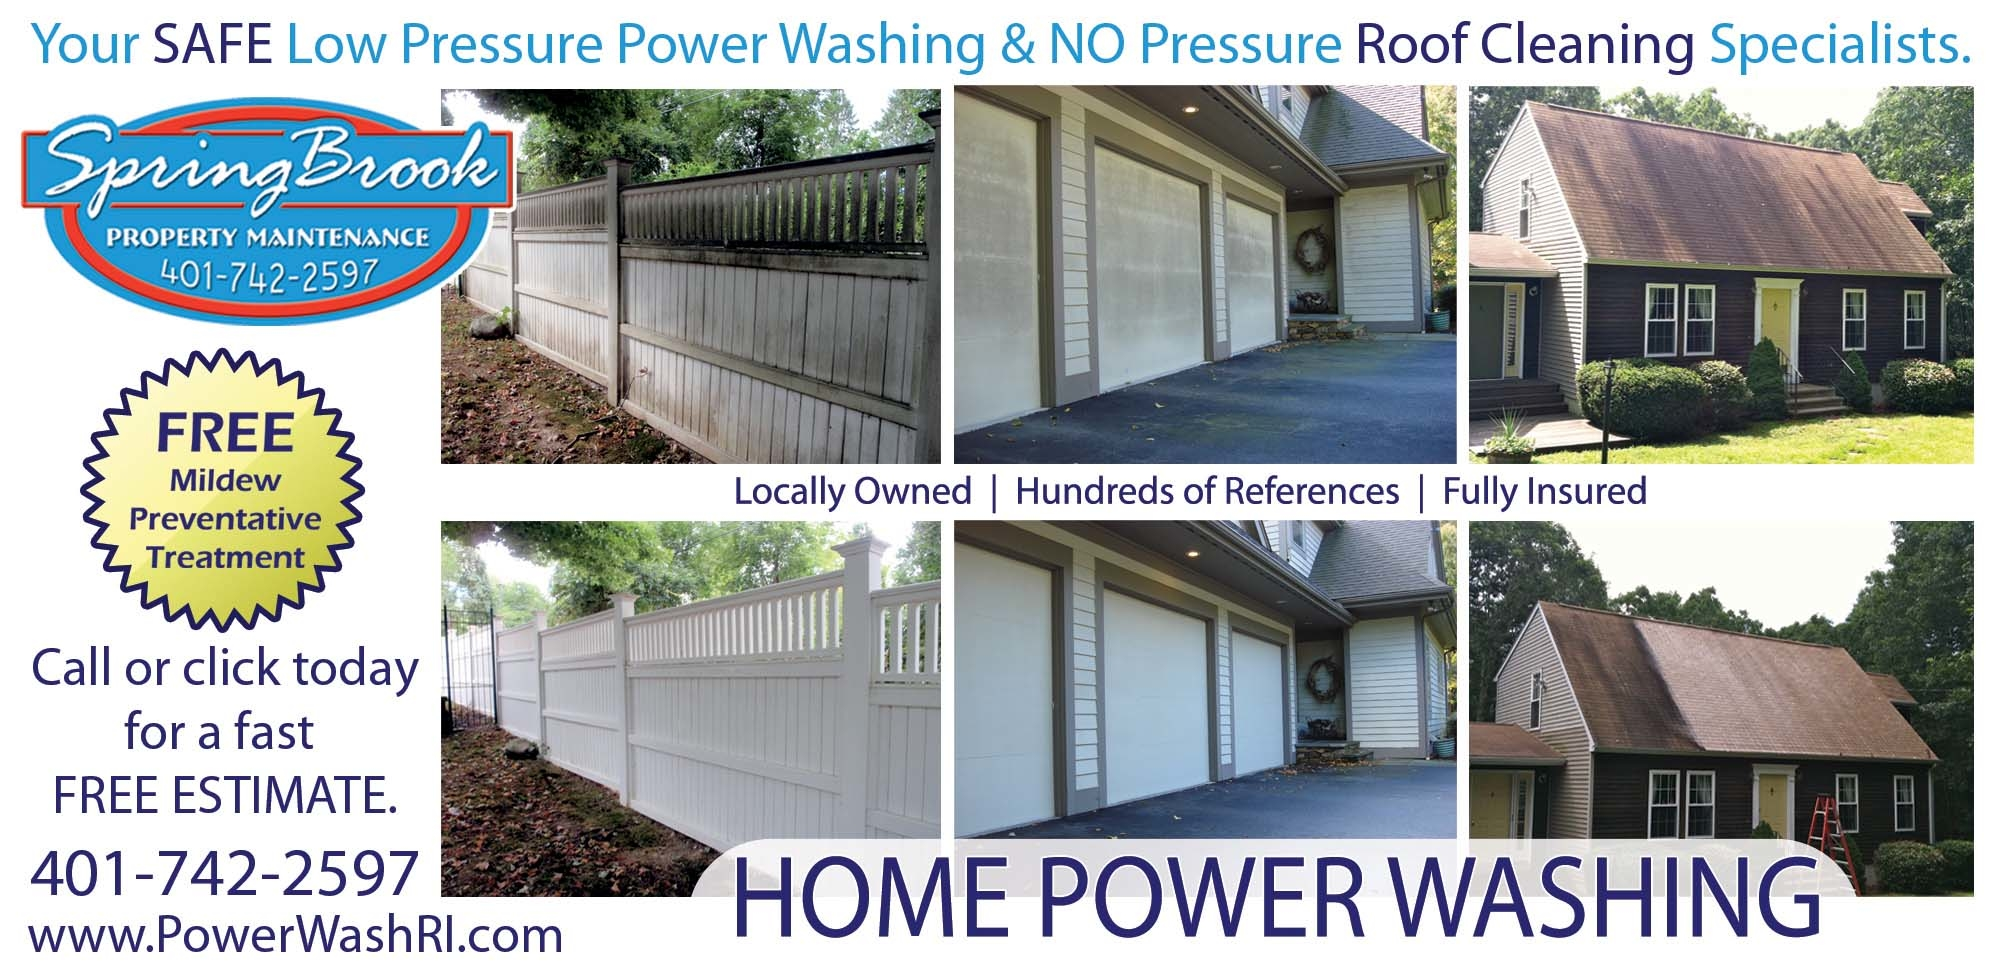 Springbrook Power Washing Coupons Near Me In Westerly